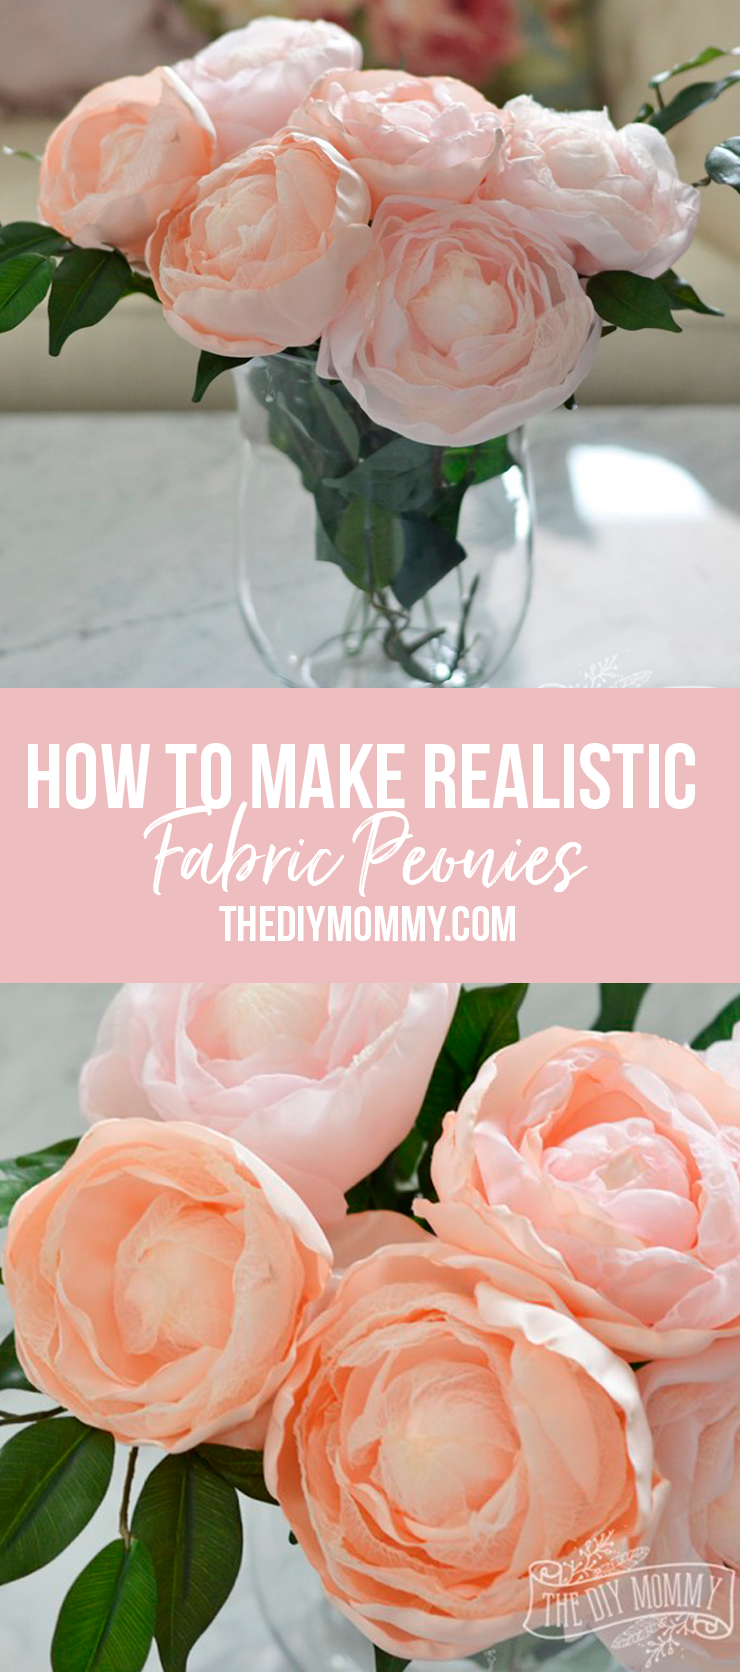 How to make realistic fabric peonies - Video Tutorial!